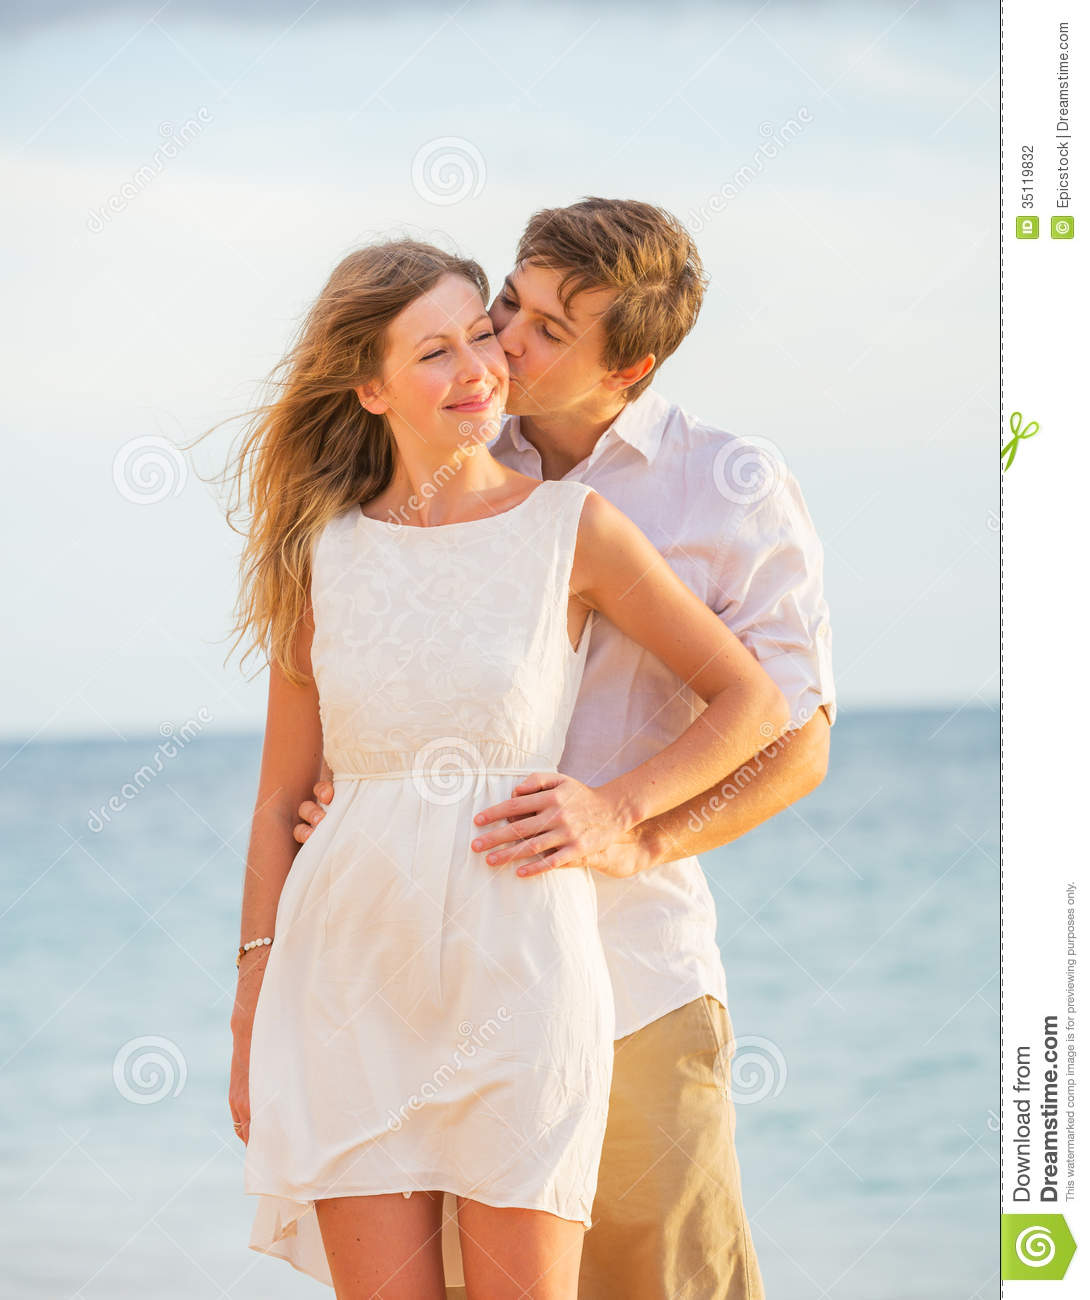 Couple At The Beach Stock Image Image Of Caucasian: Happy Romantic Couple Kissing On The Beach At Sunset Stock